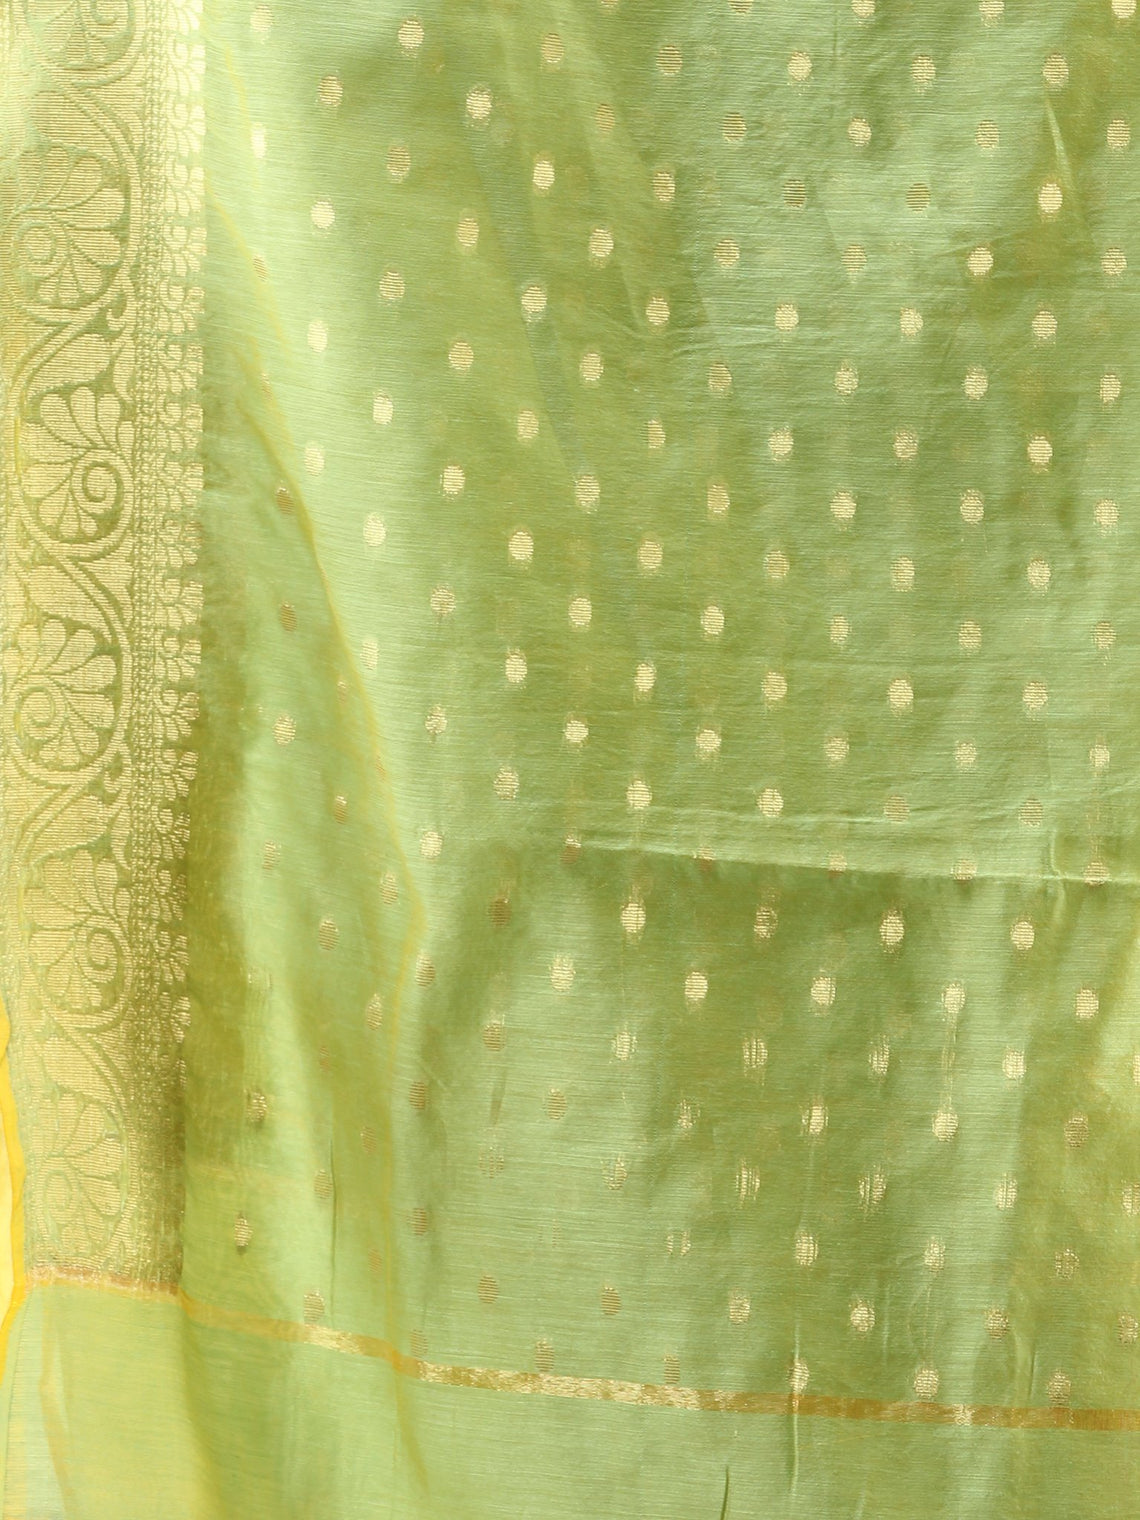 Banarasi Chanderi Dupatta With Zari Work - Light Green & Gold - D04170836